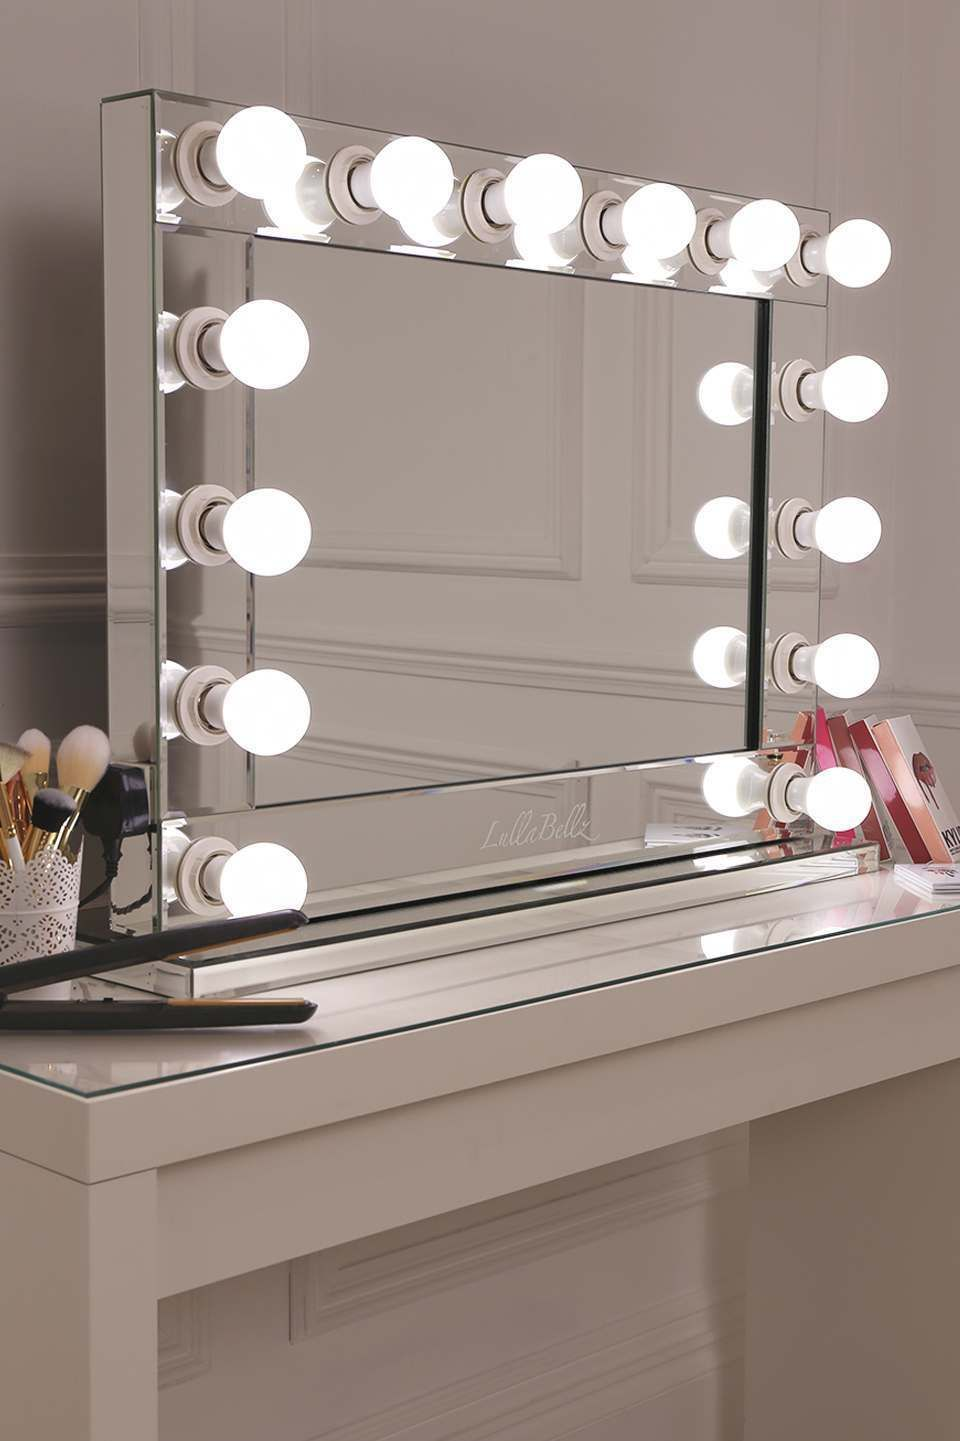 Vanity Mirror With Led Light Bulbs Around It To Sit On Your